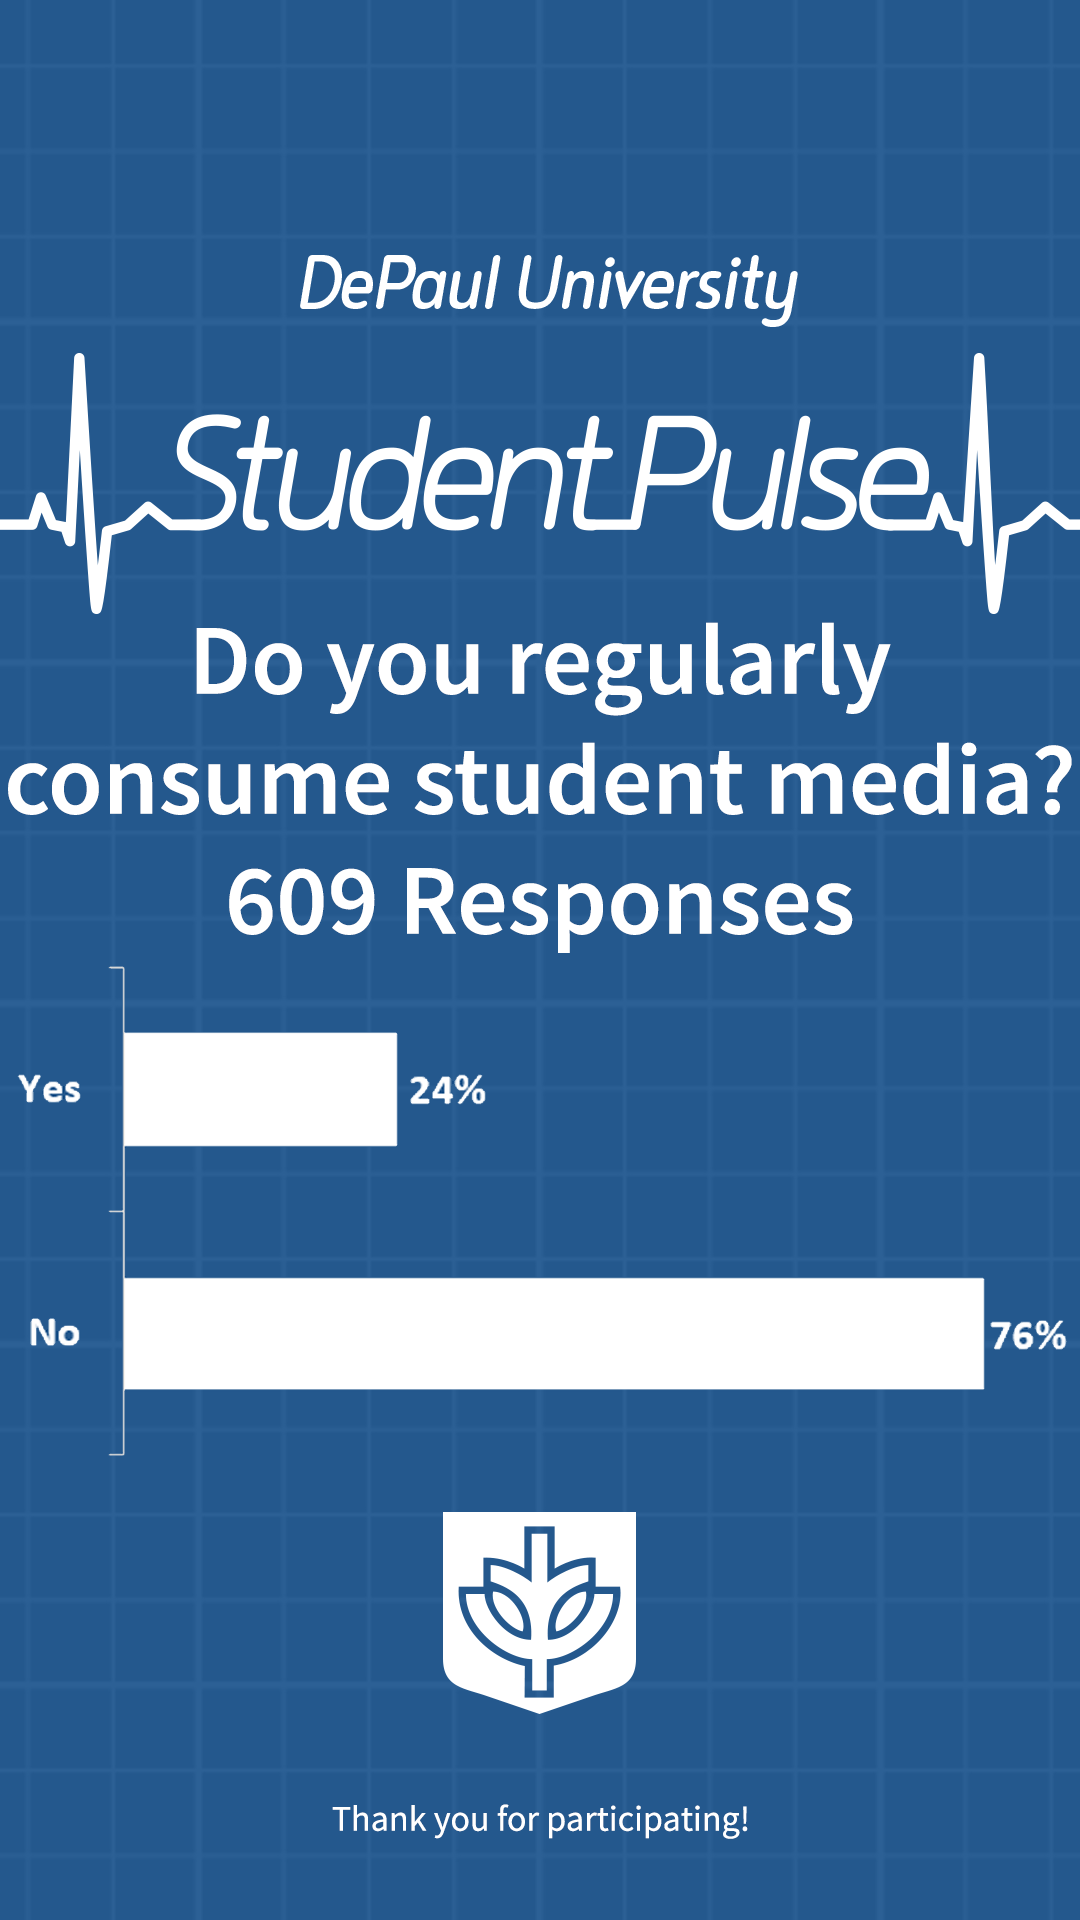 Do you regularly consume student media?